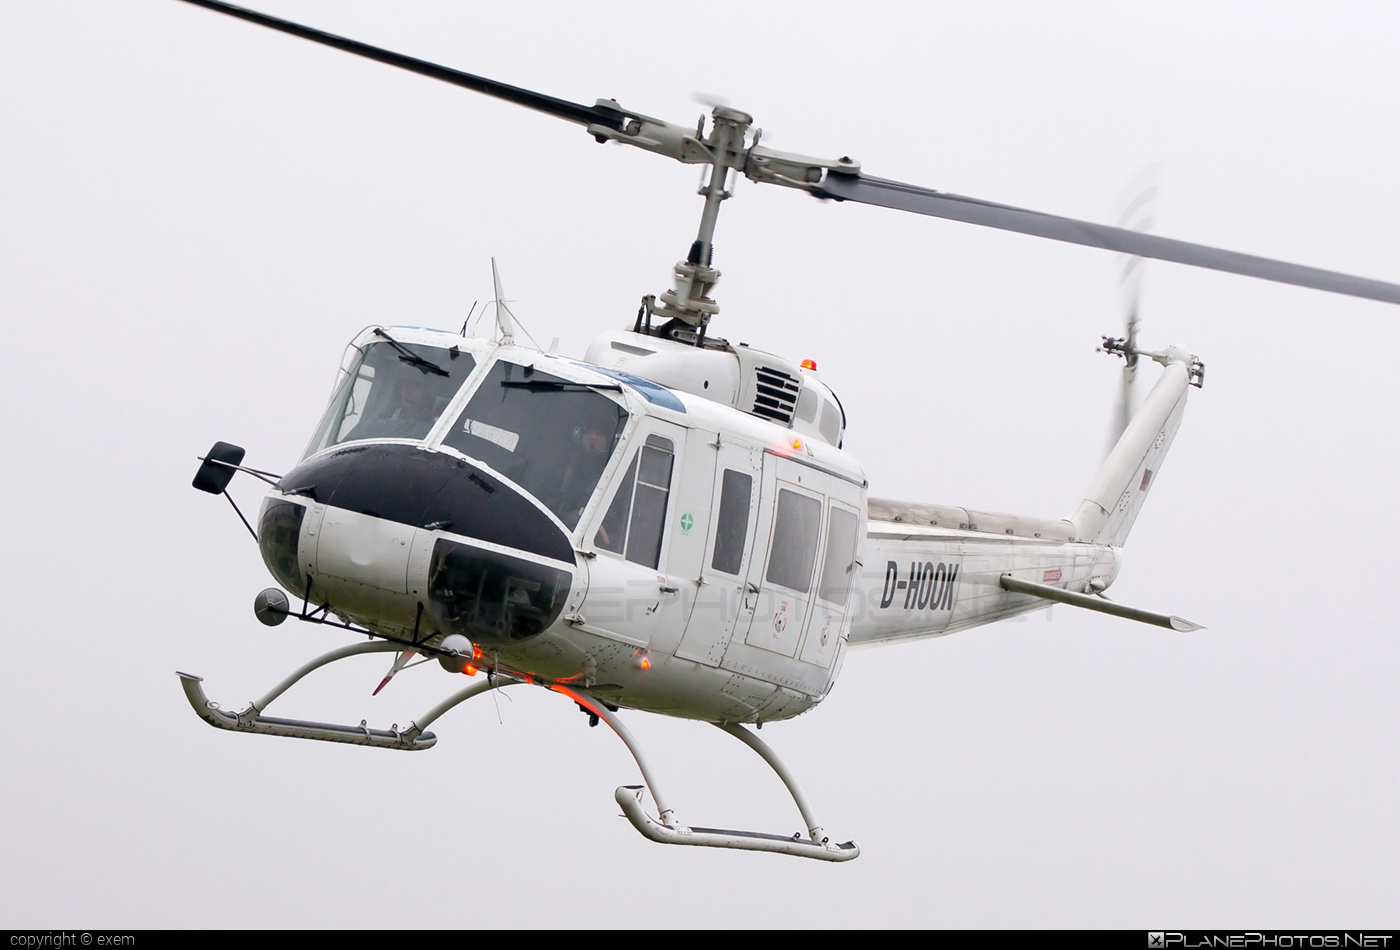 Bell 205A-1 - D-HOOK operated by Agrarflug Helilift #bell #bellhelicopters